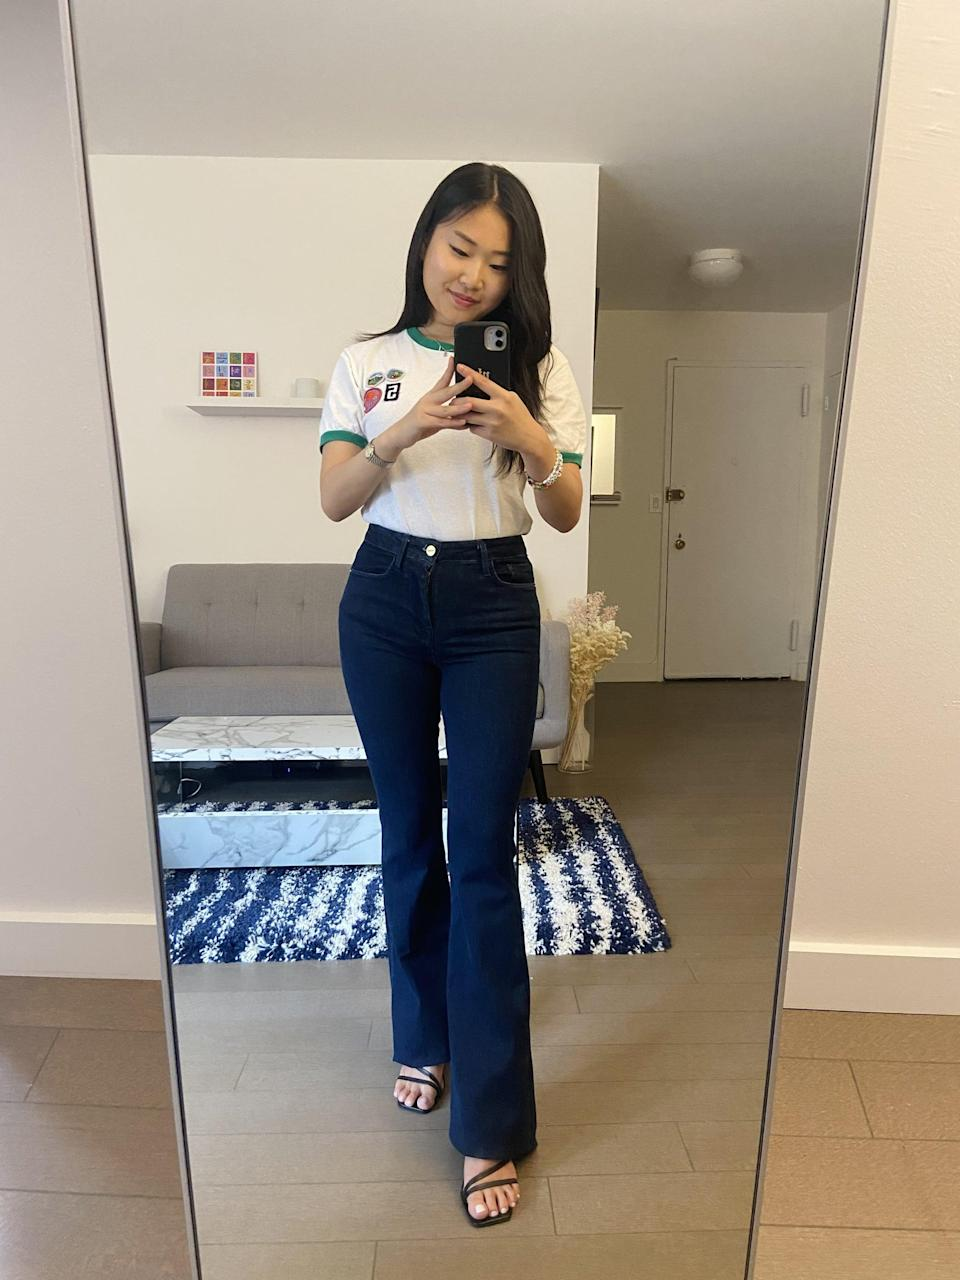 """<div class=""""pullquote-container""""><blockquote class=""""pullquote"""">""""They almost feel like jeggings (if you remember what those were like)!""""</blockquote></div> <p>""""It's hard to believe these jeans fit <em>five</em> other waist sizes, because they feel like they were made for me and my usual size 25 waist - minus the length, but we'll get into that later. As the description promises, the Le One Flare is super-stretchy and buttery soft, which means they slide right on and are the ideal jean for easing back into high-waisted denim. They almost feel like jeggings (if you remember what those were like)! But instead of cutting you off, the flare truly gives the illusion of longer legs. Really, my only issue with these jeans was the length. I'm 5'2"""" and the jeans were about a foot too long (I rolled them up here), but as soon as I get in with my tailor, I imagine I'll be wearing 'em pretty regularly."""" - Yerin Kim, associate editor, trending and viral features</p>"""